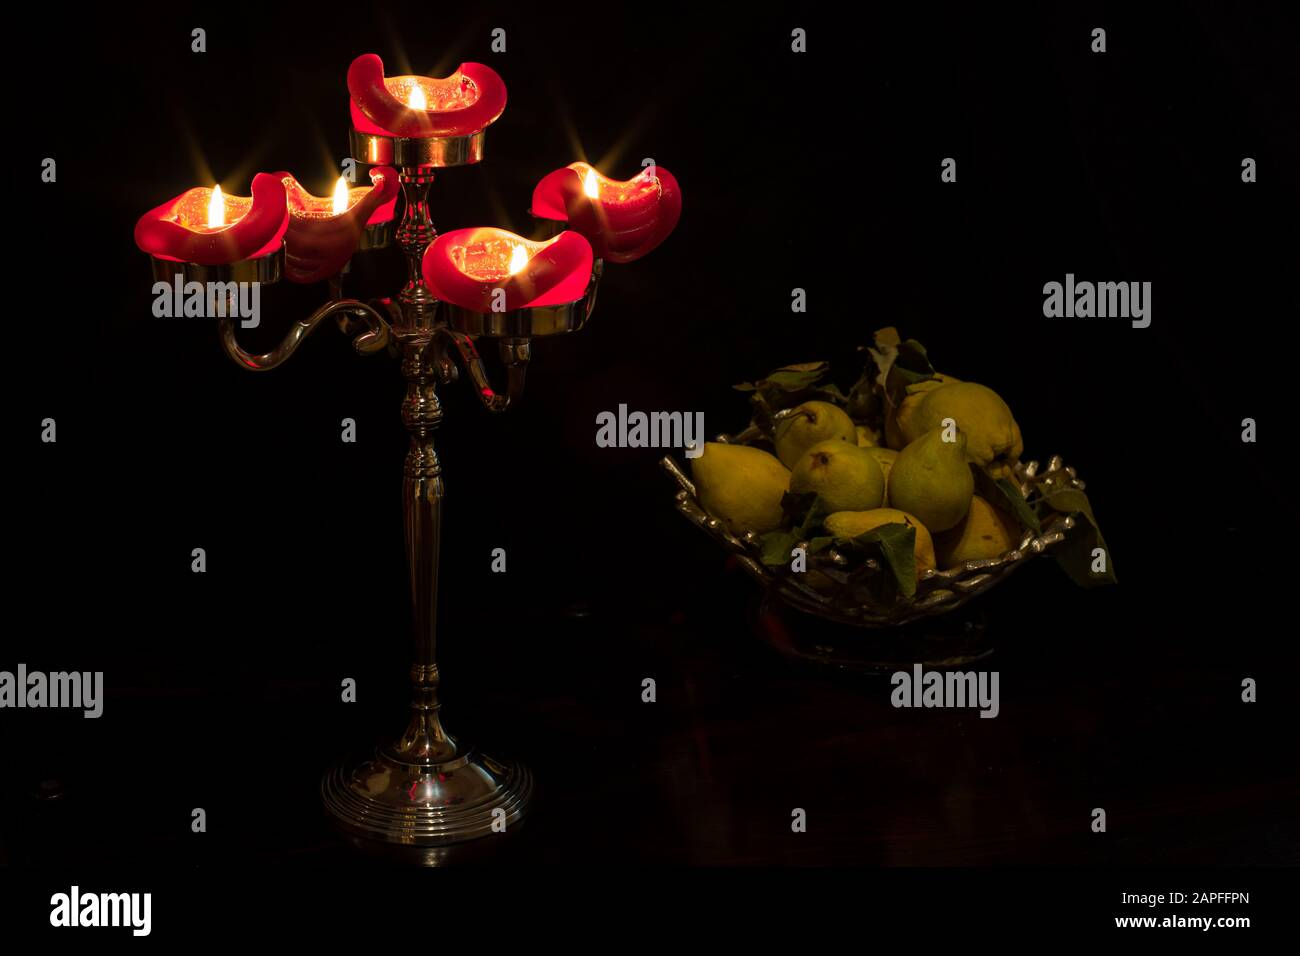 Still life with a Candelabra and a fruit basket. Stock Photo